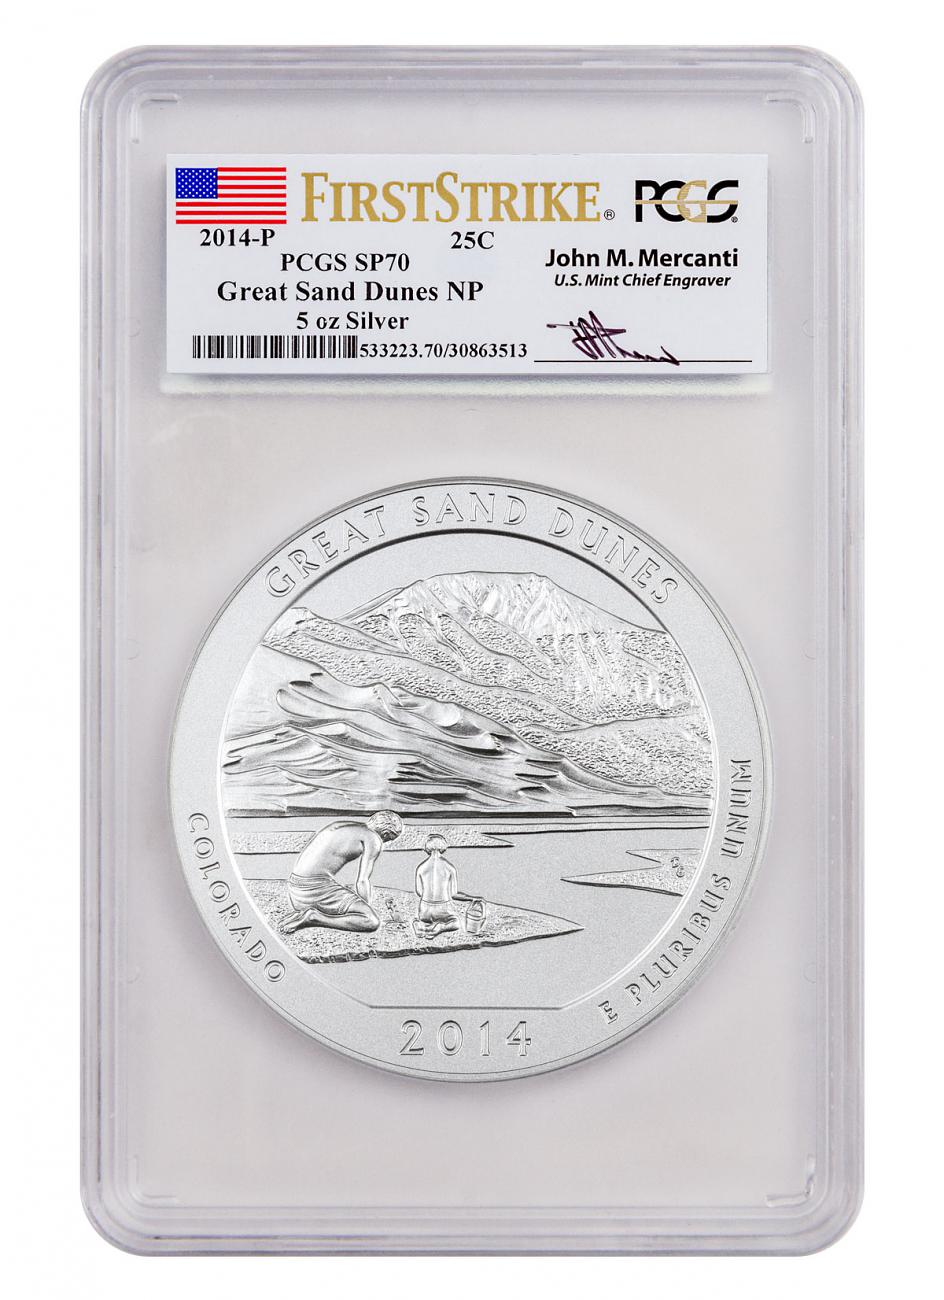 2014-P Great Sand Dunes 5 oz. Silver America the Beautiful Specimen Coin PCGS SP70 FS (Mercanti Signed Label)